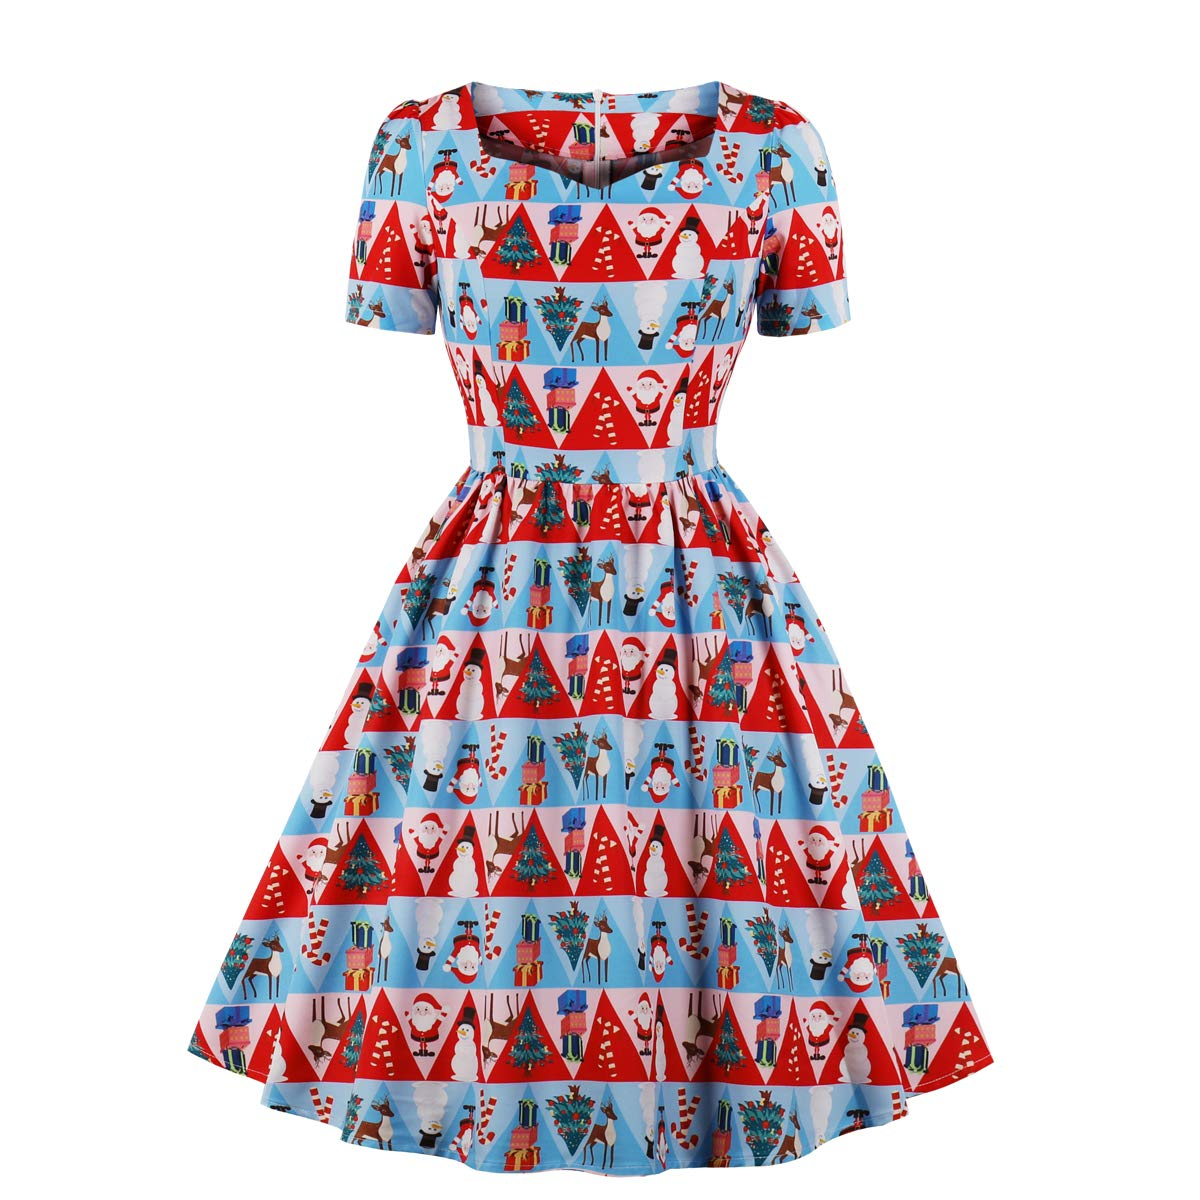 1940s Plus Size Dresses | Swing Dress, Tea Dress Wellwits Womens Triangle Fancy Pattern Print Tea Length 1950s Vintage Dress $22.98 AT vintagedancer.com